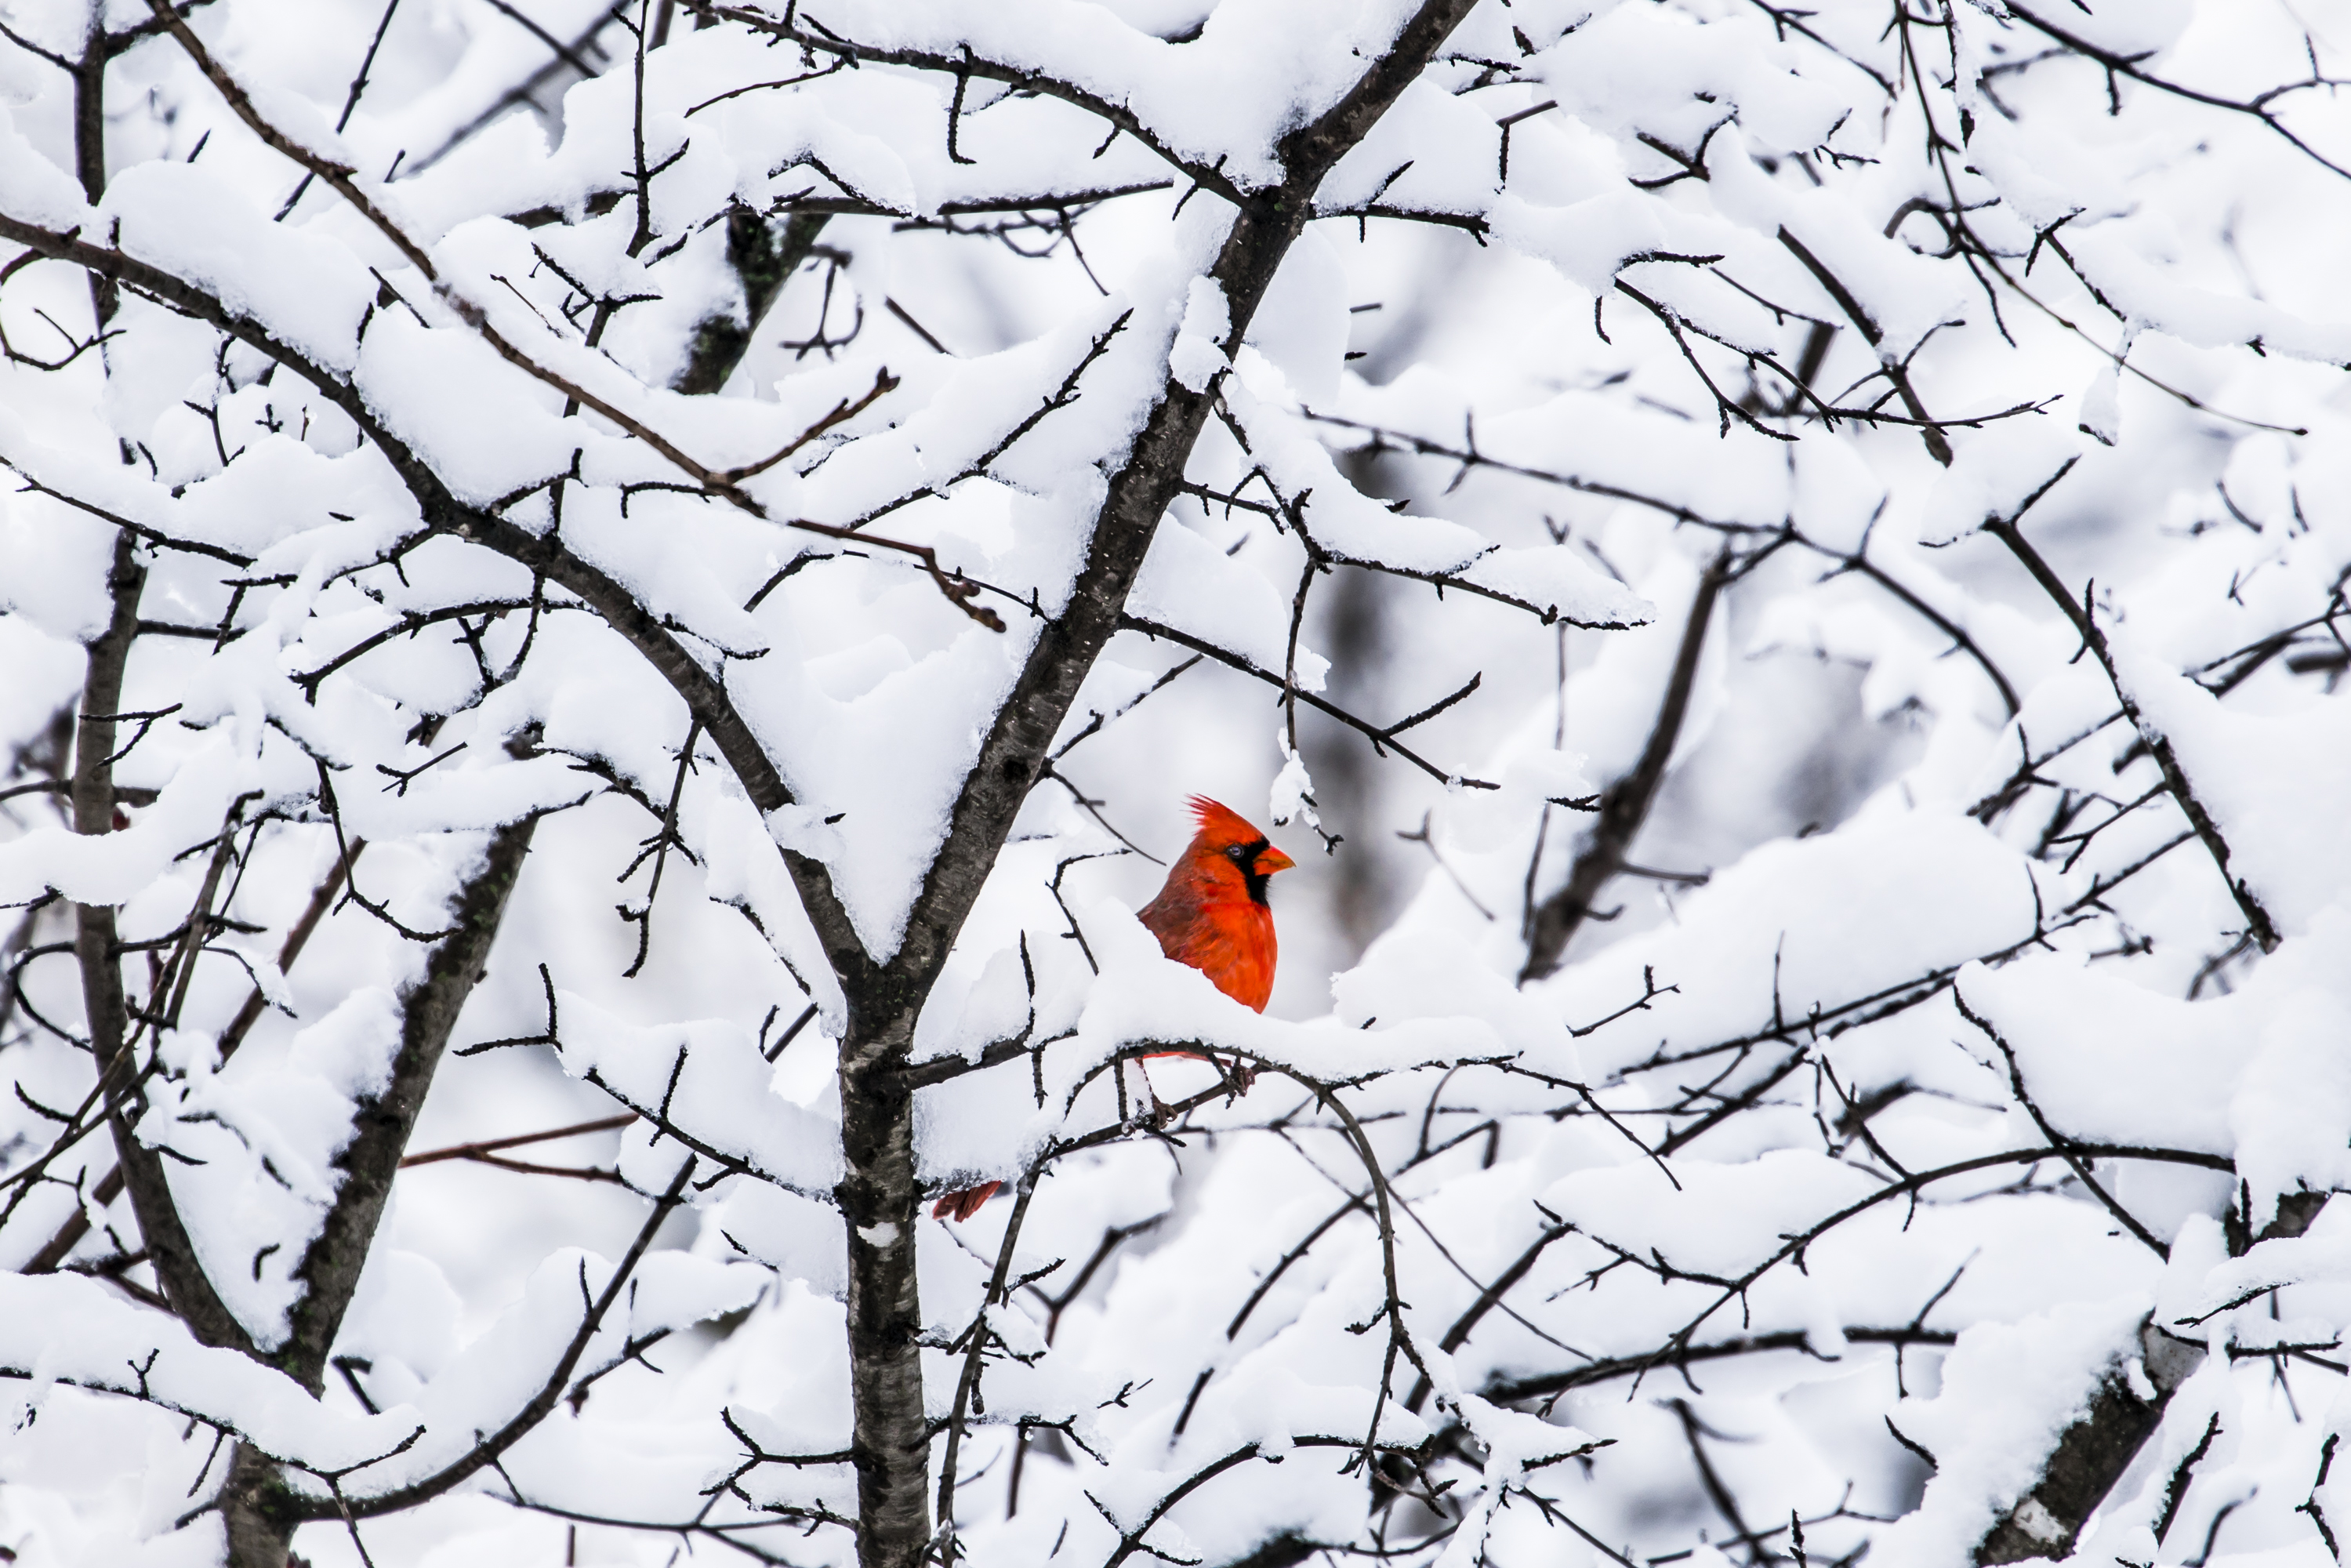 A red bird sits in snow covered branches